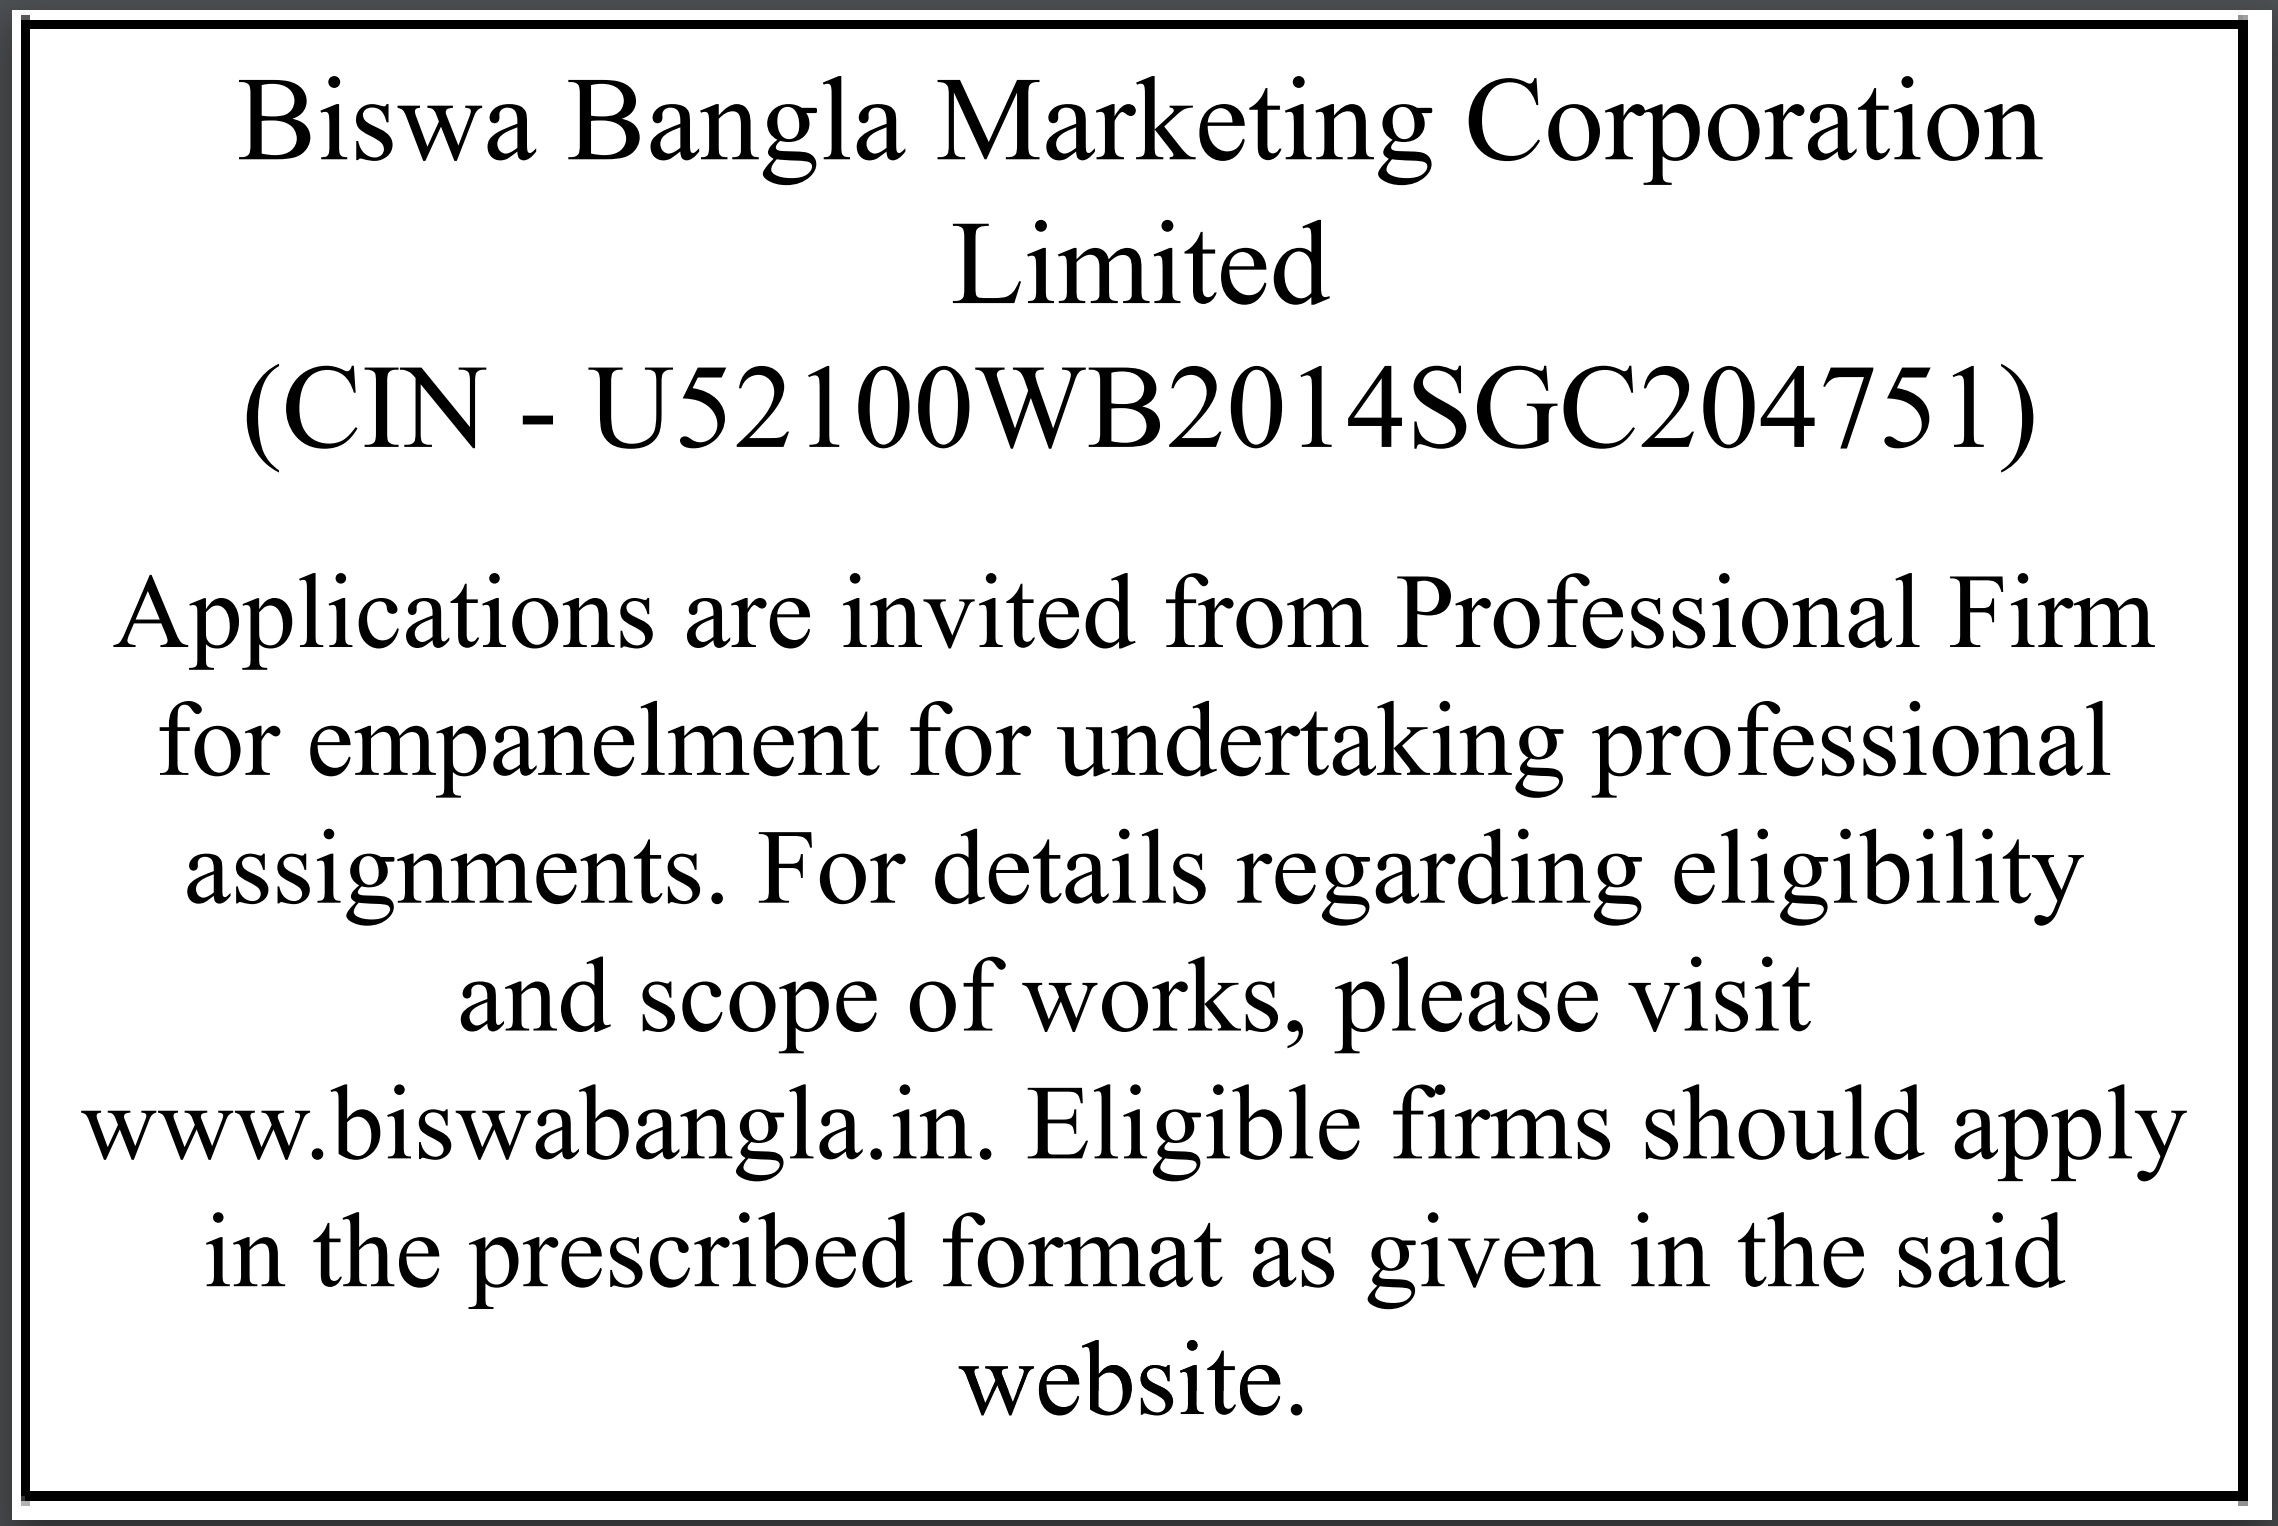 Notification For Inviting Applications From Eligible Applicants For Empanelment